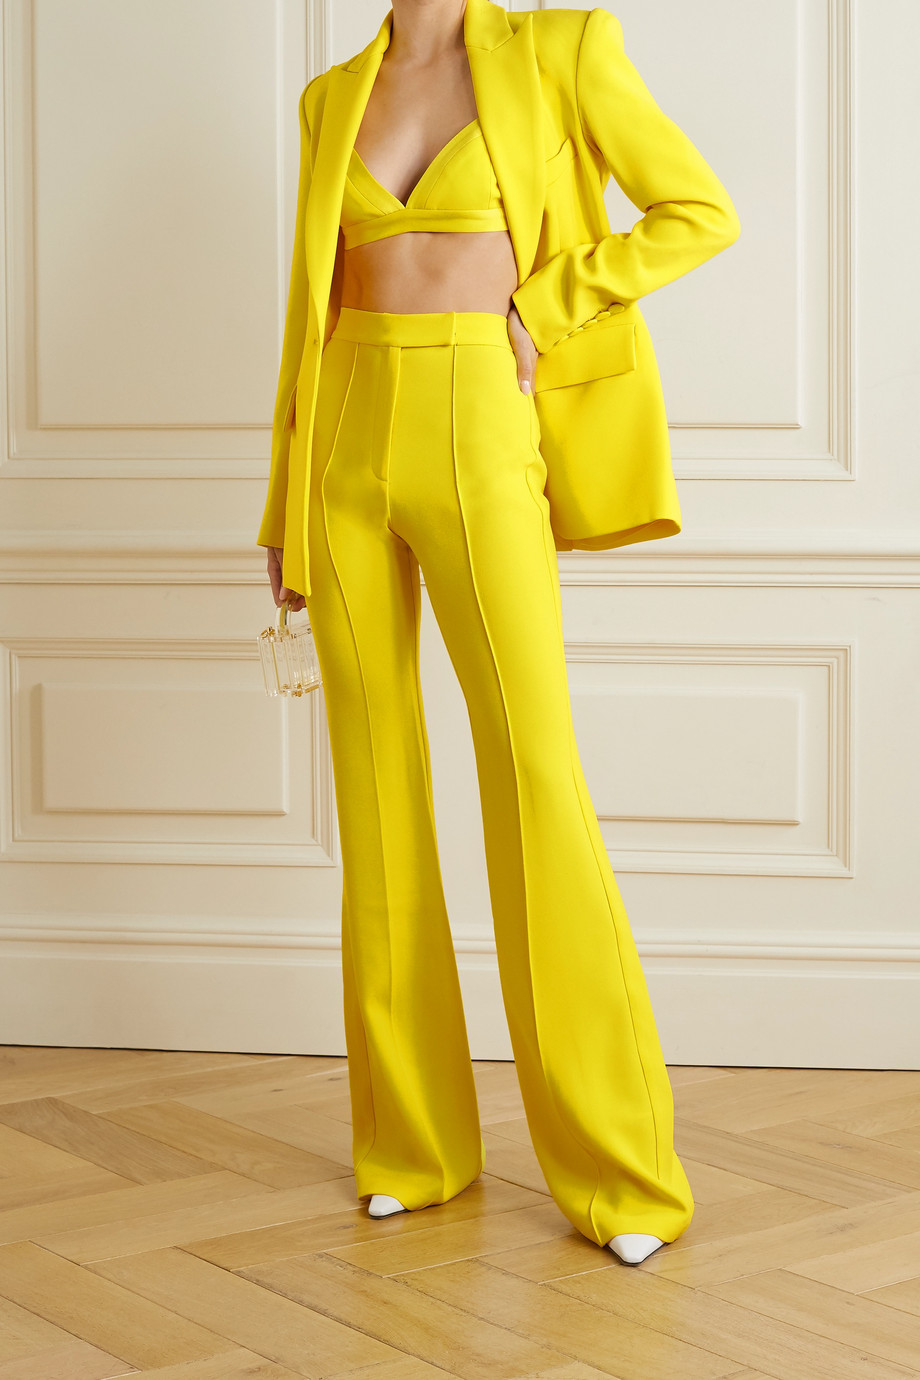 Alex Perry Rene crepe flared pants